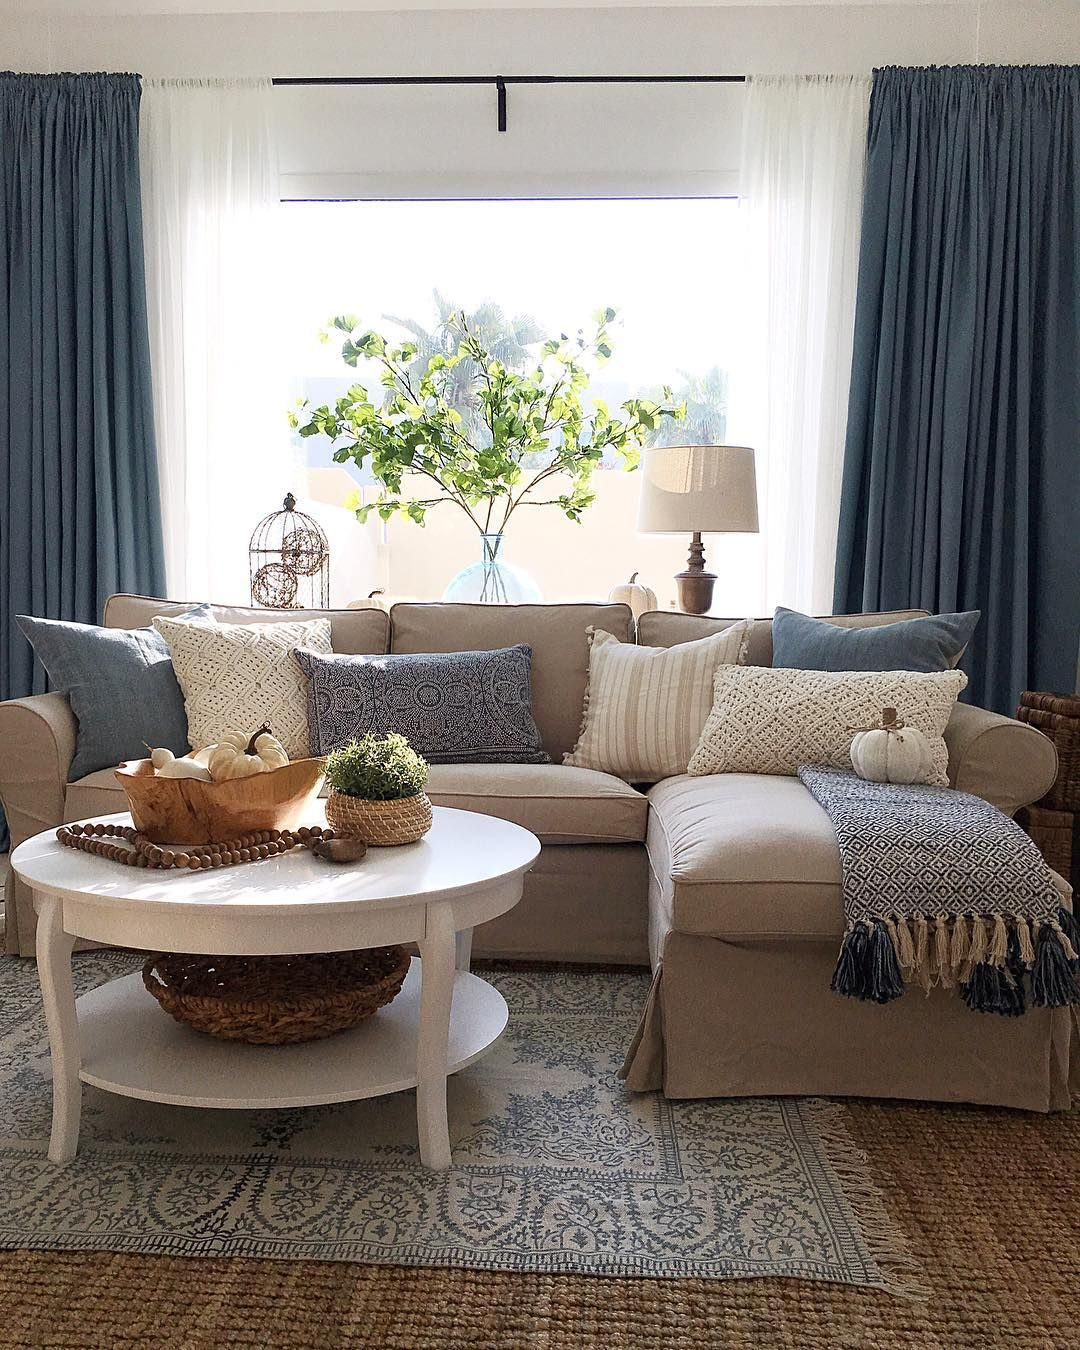 pin by michelle hawkins on living room beach house decor home rh pinterest com au